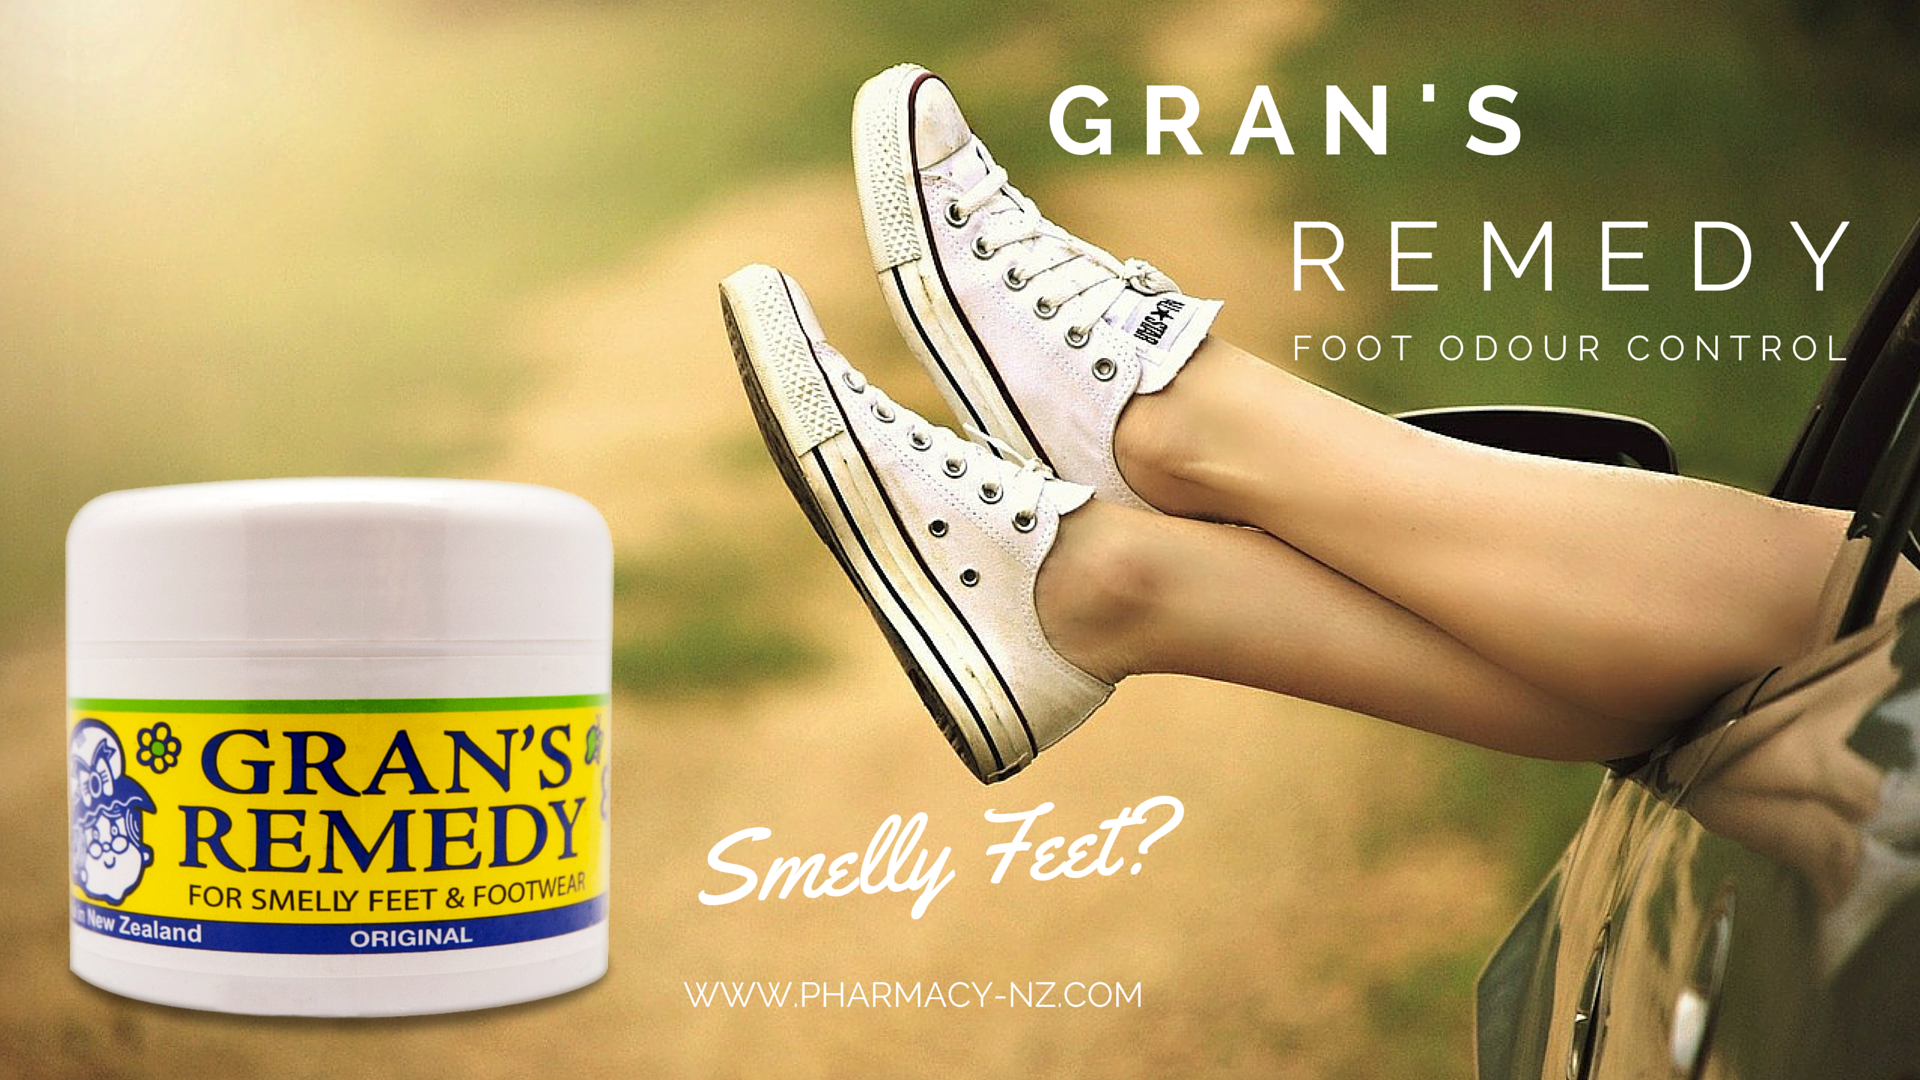 Grans Remedy Treatment for Smelly Feet